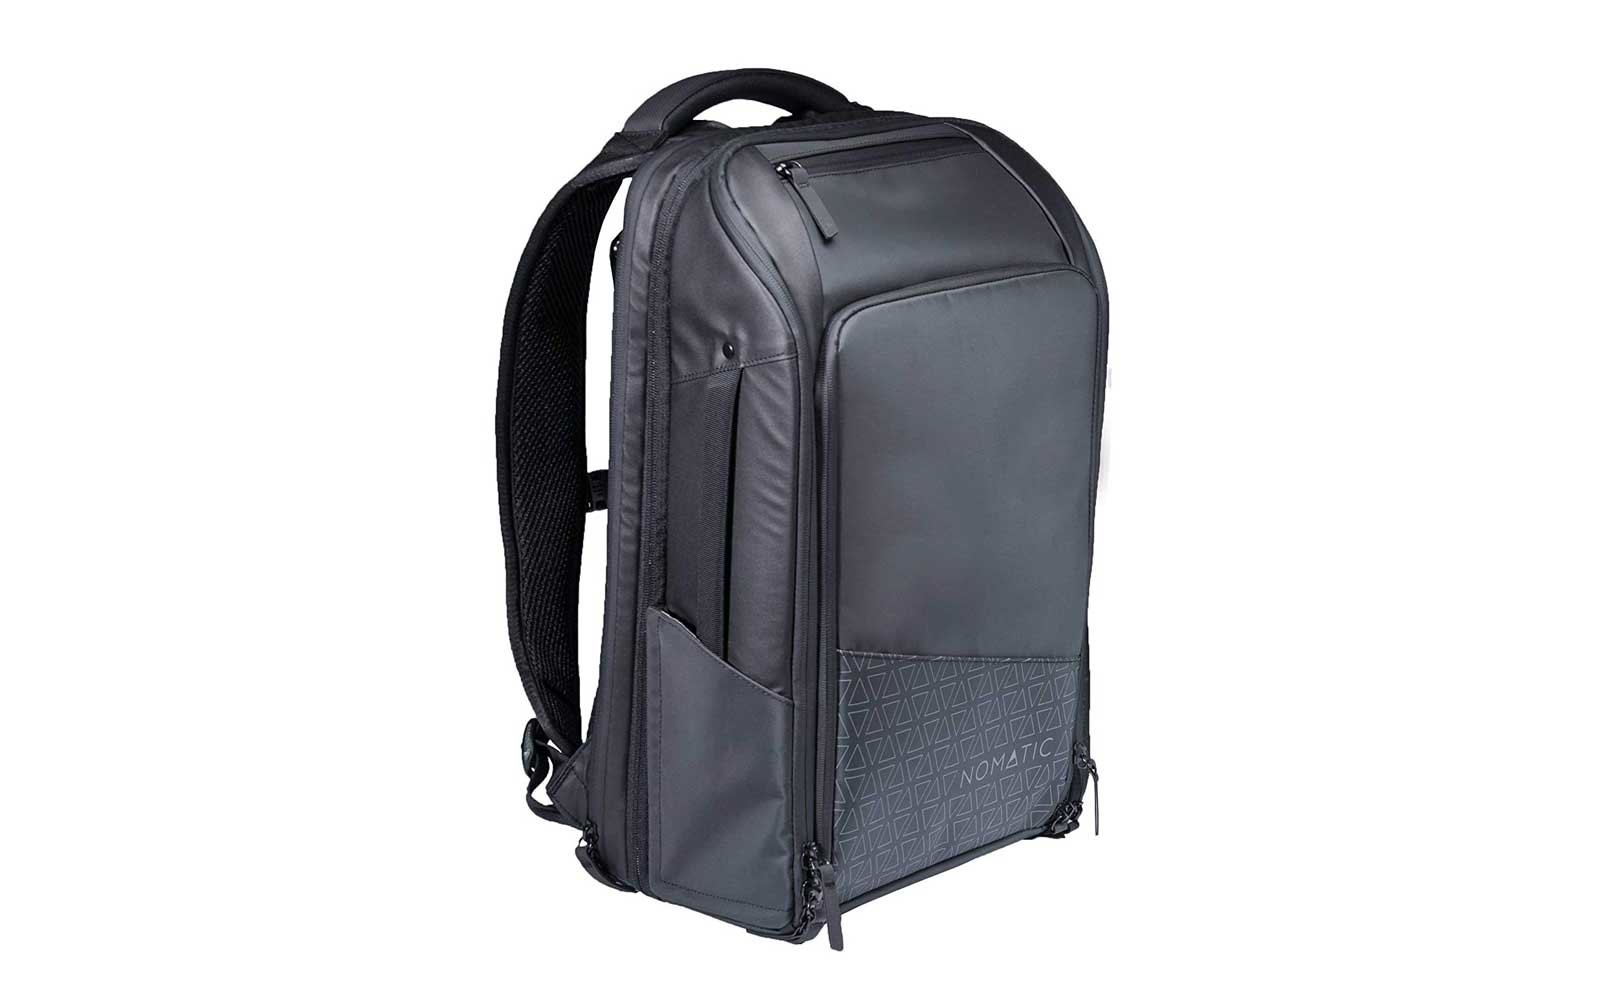 92f097614264 Best All-in-one Laptop Backpack  Nomatic Travel Pack